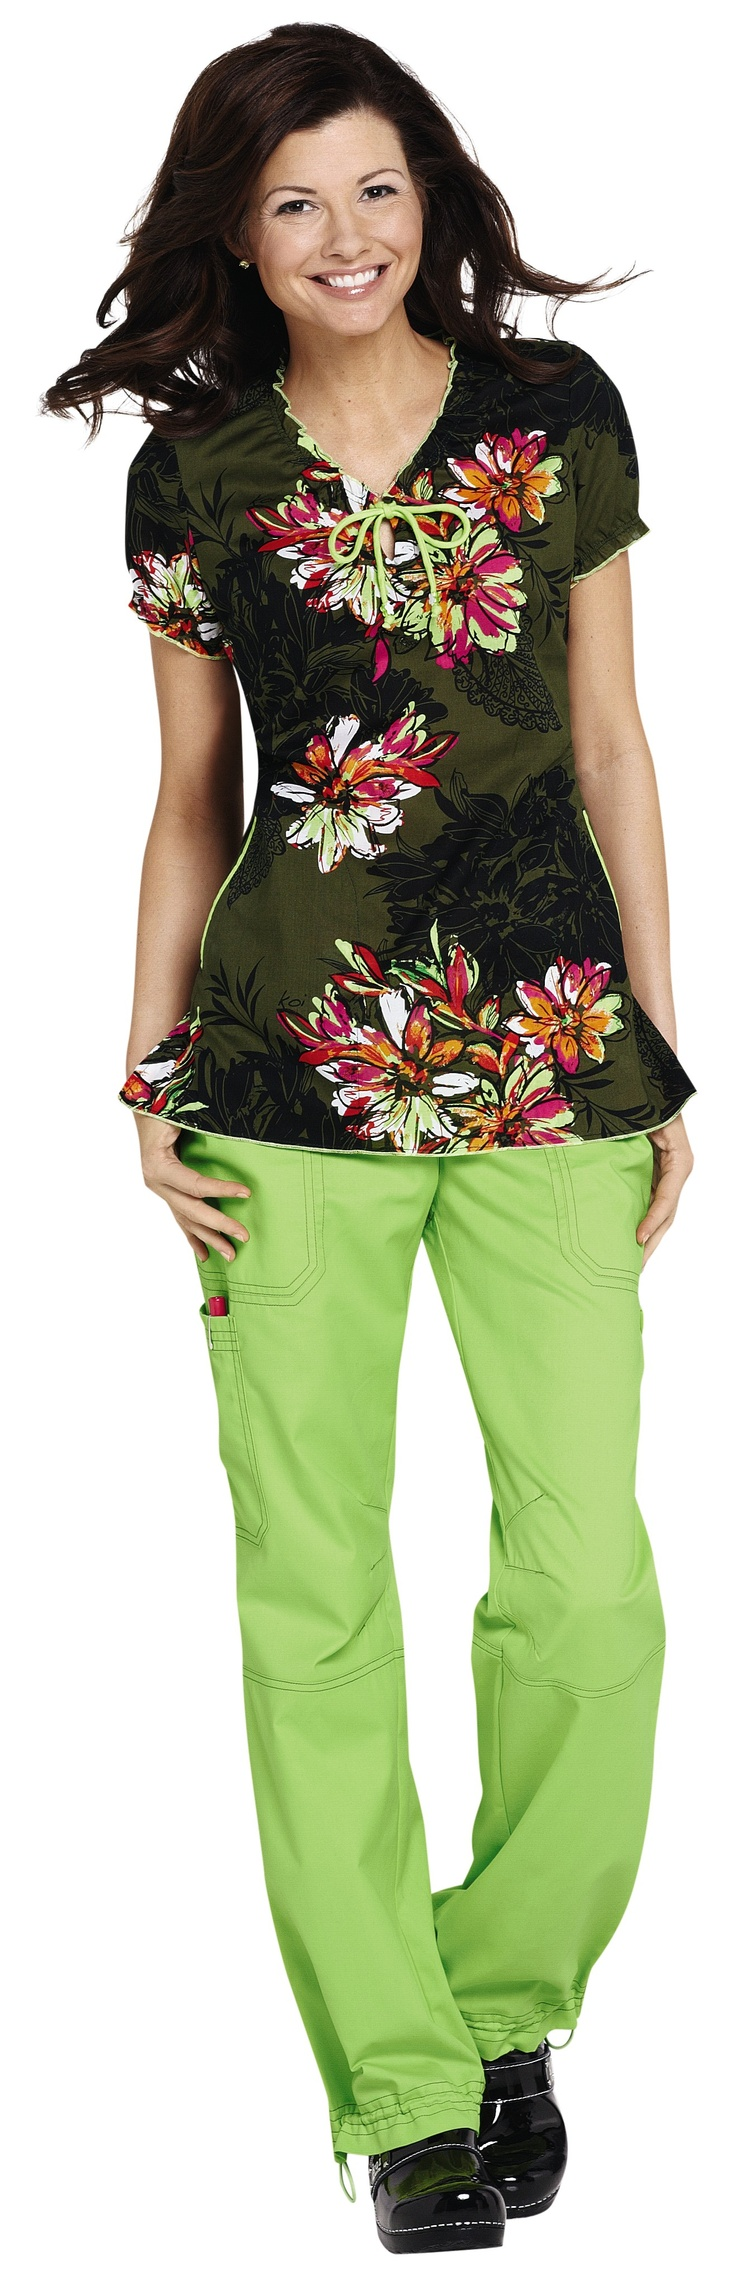 NEW- we love the colors in this Koi Bridgette Serpentine print scrub top.